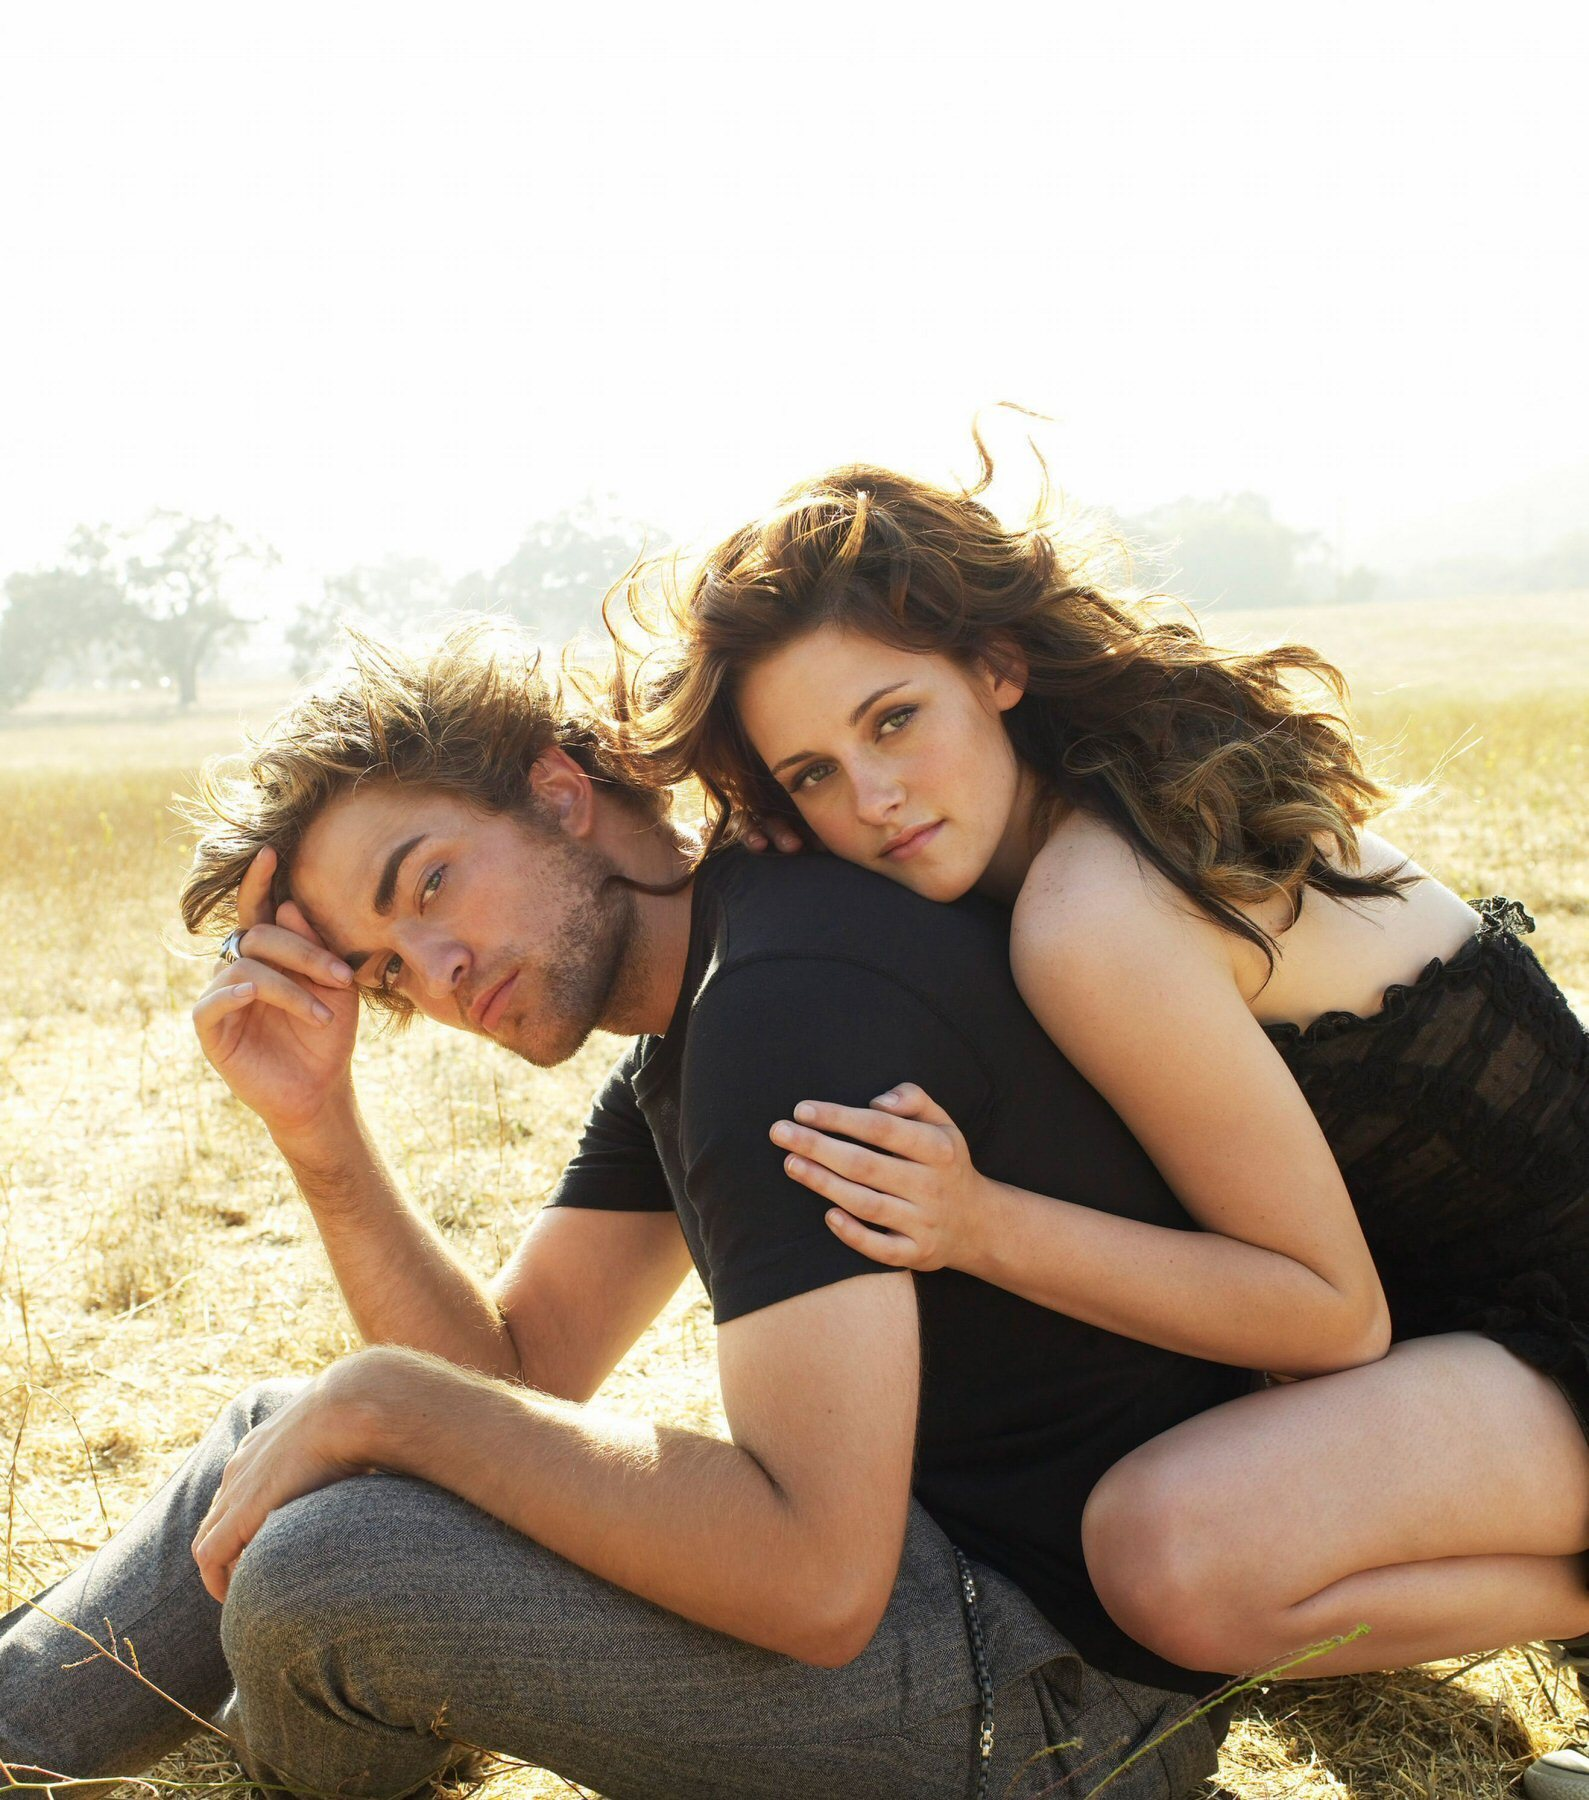 Download this Twilight Series Robert Pattinson And Kristen Stewart Vanity Fair picture